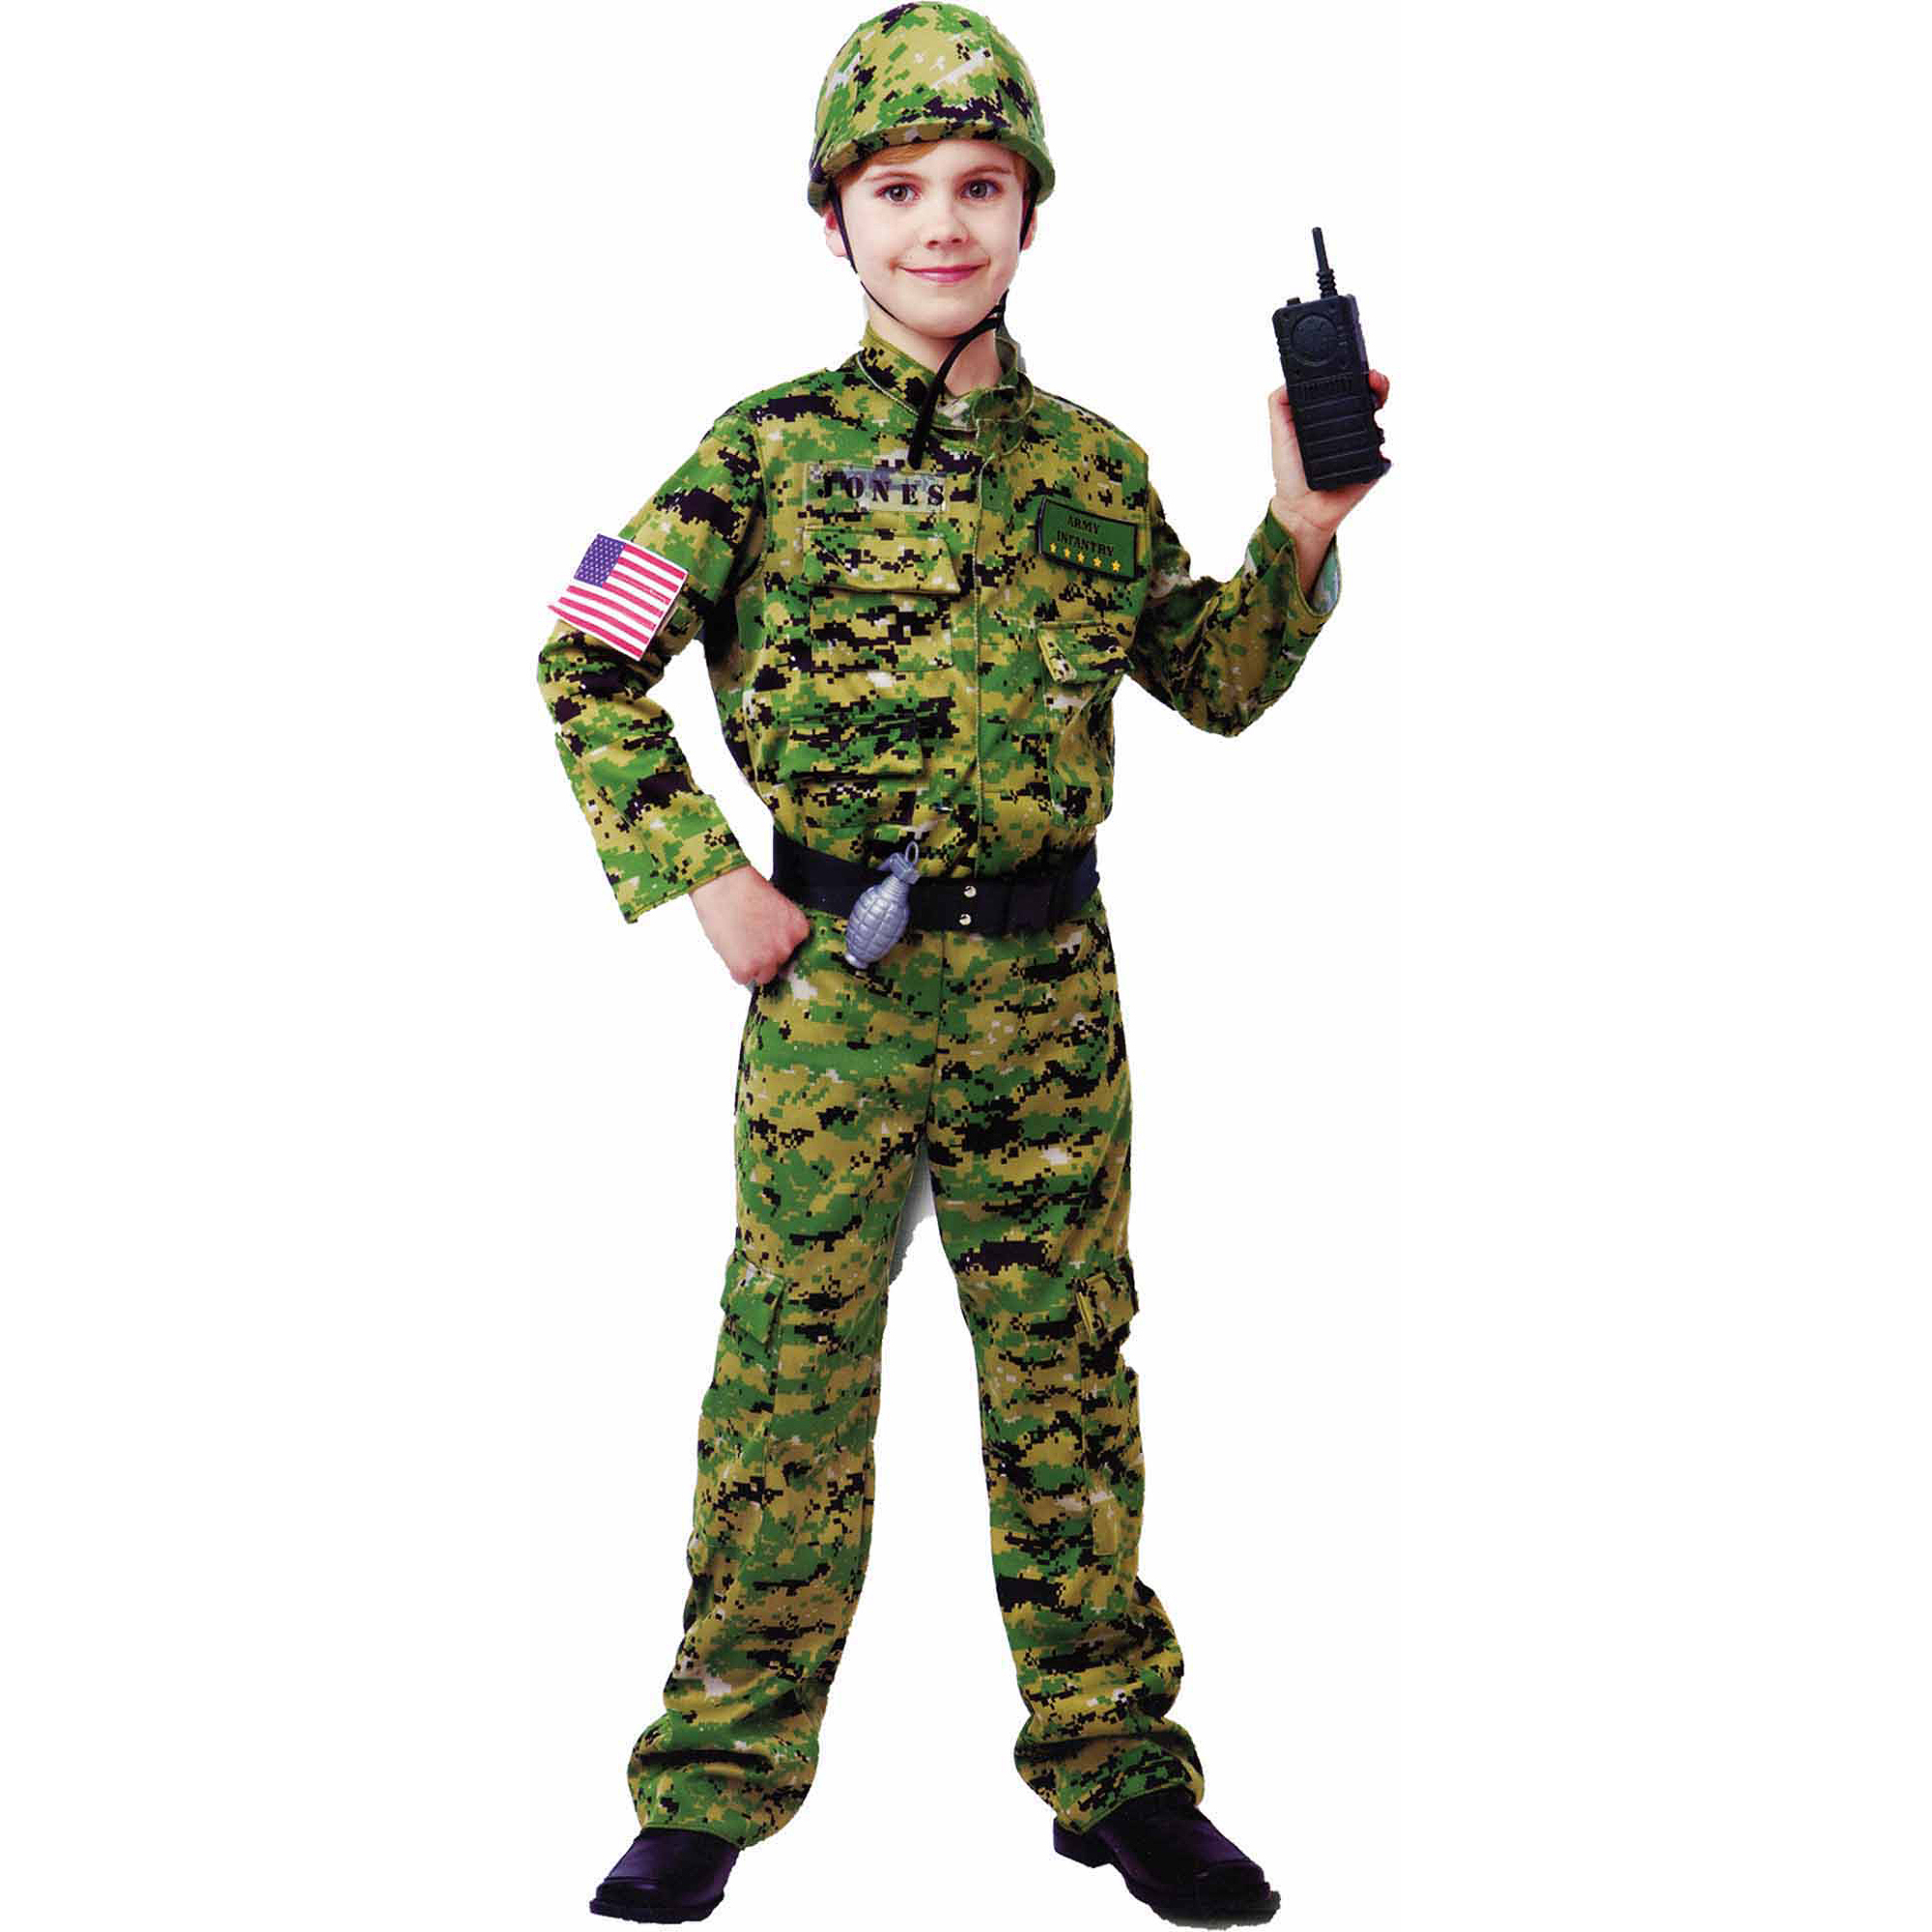 sc 1 st  Walmart & Generic Army Infantry Child Halloween Costume - Walmart.com